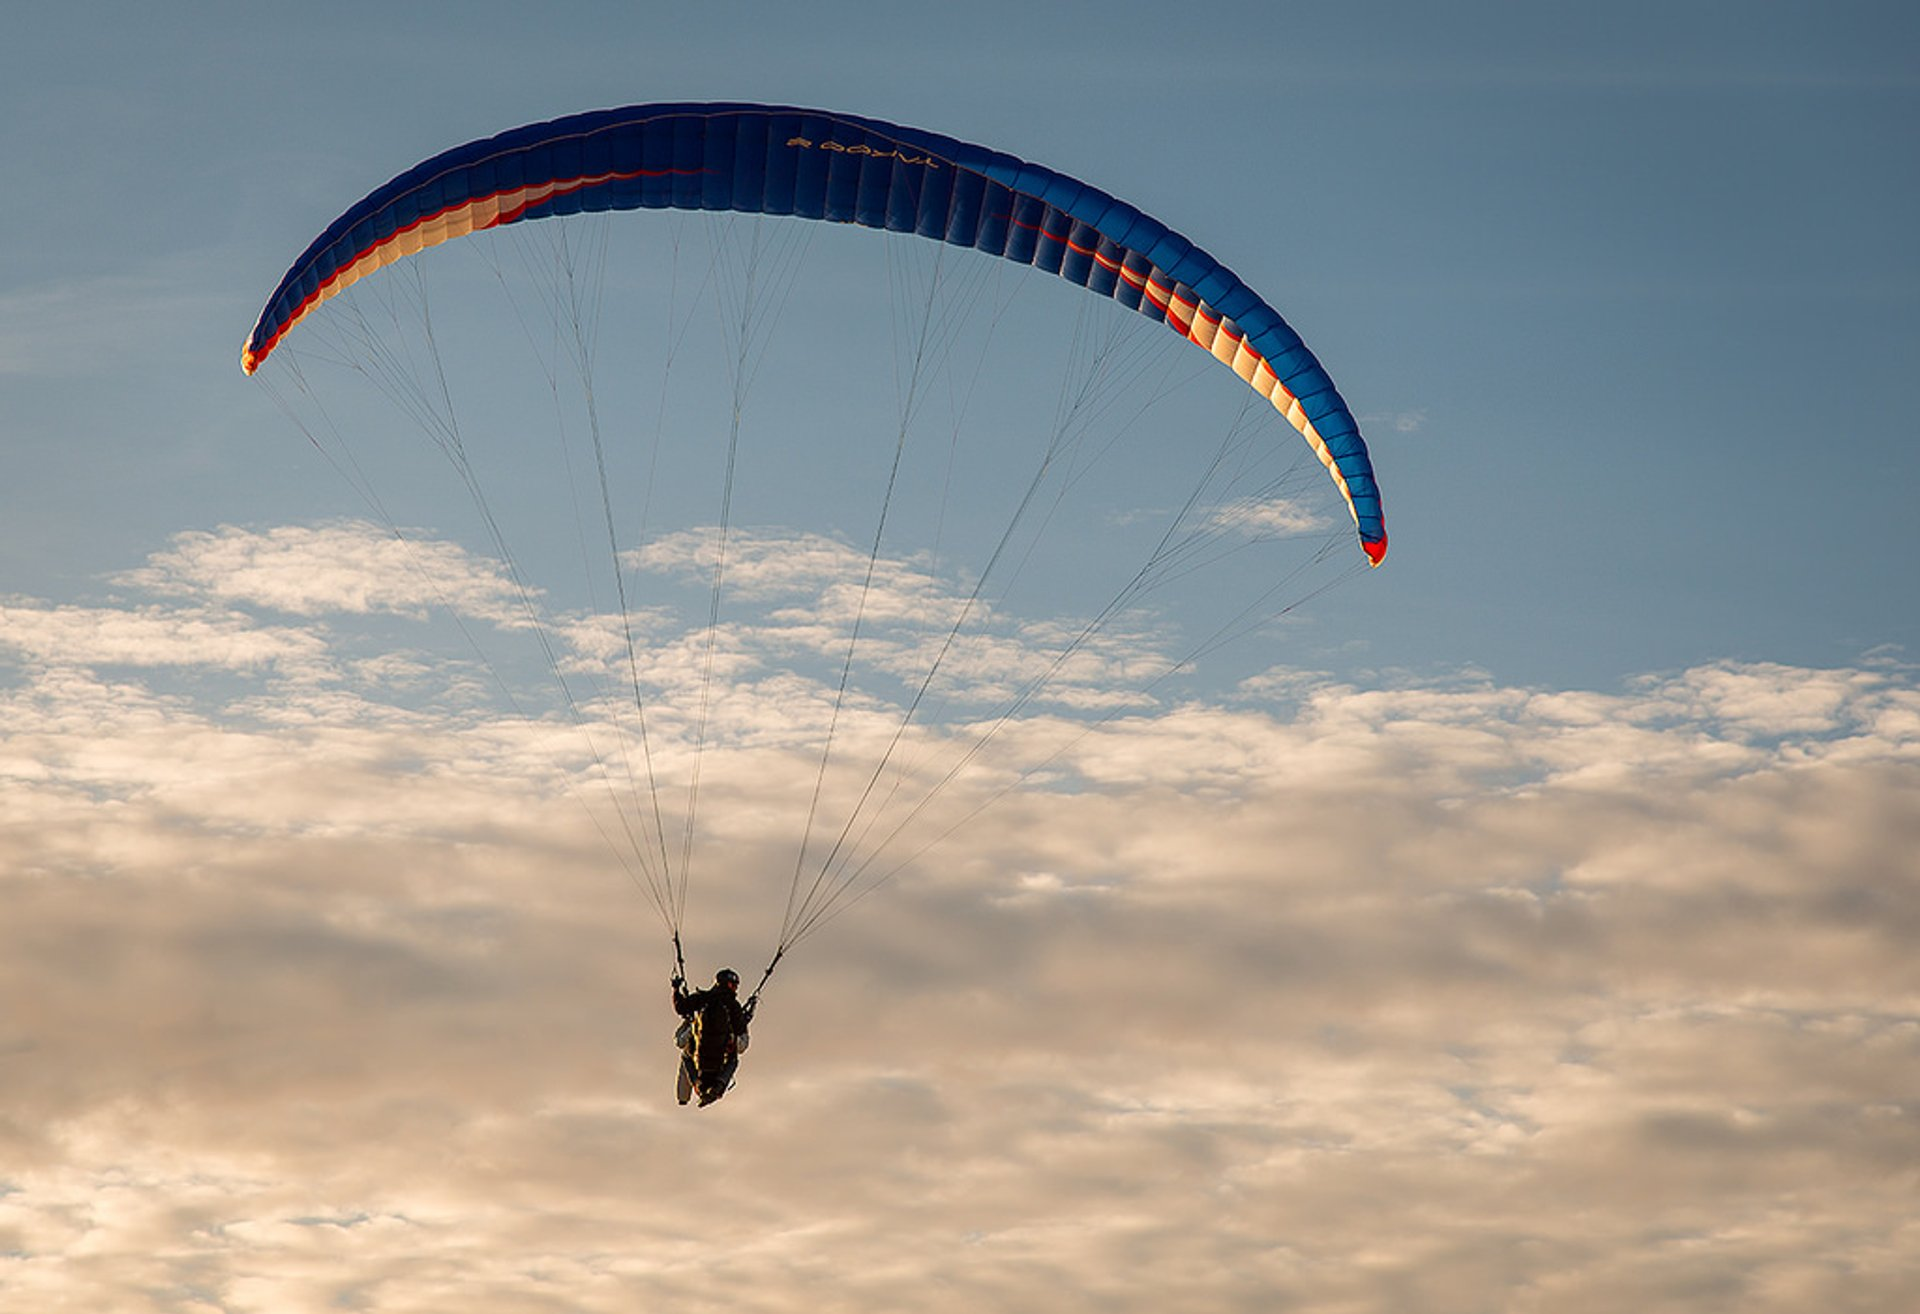 Paragliding in San Diego 2020 - Best Time